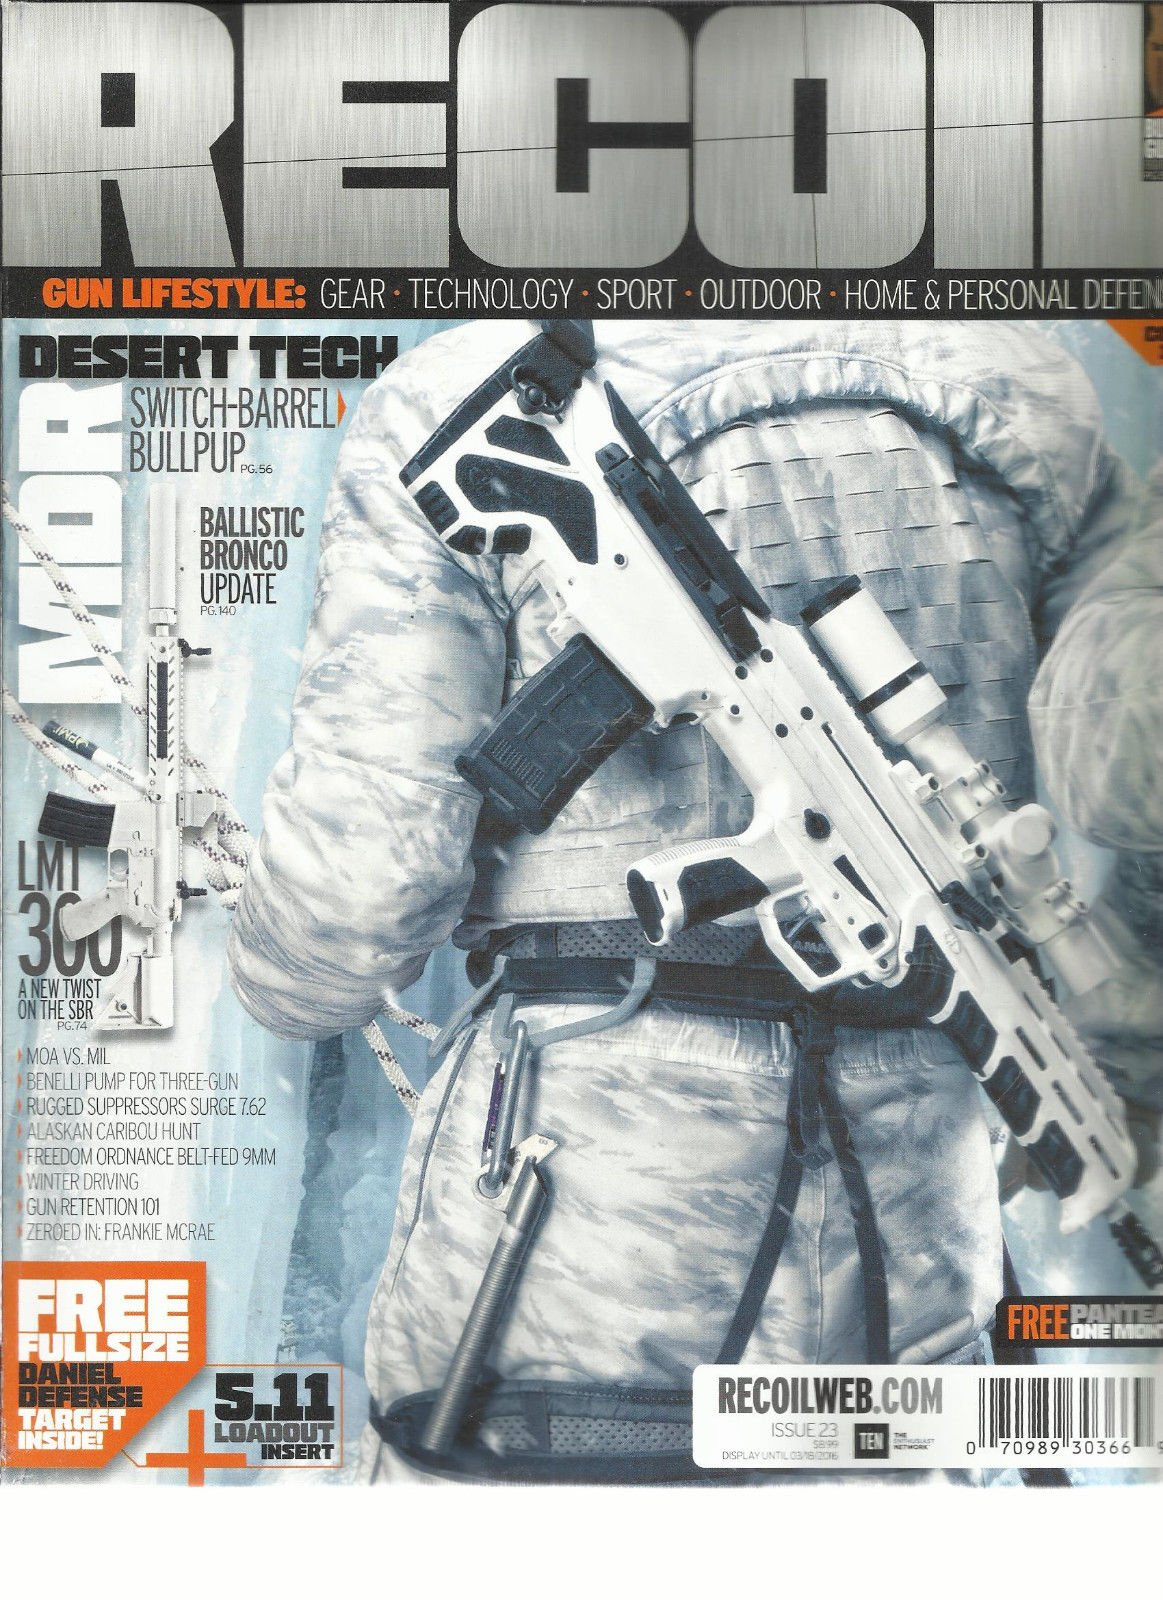 RECOIL, HOME & PERSONAL DEFENSE MAGAZINE, ISSUE, 33 THE KING OF 2 MILES